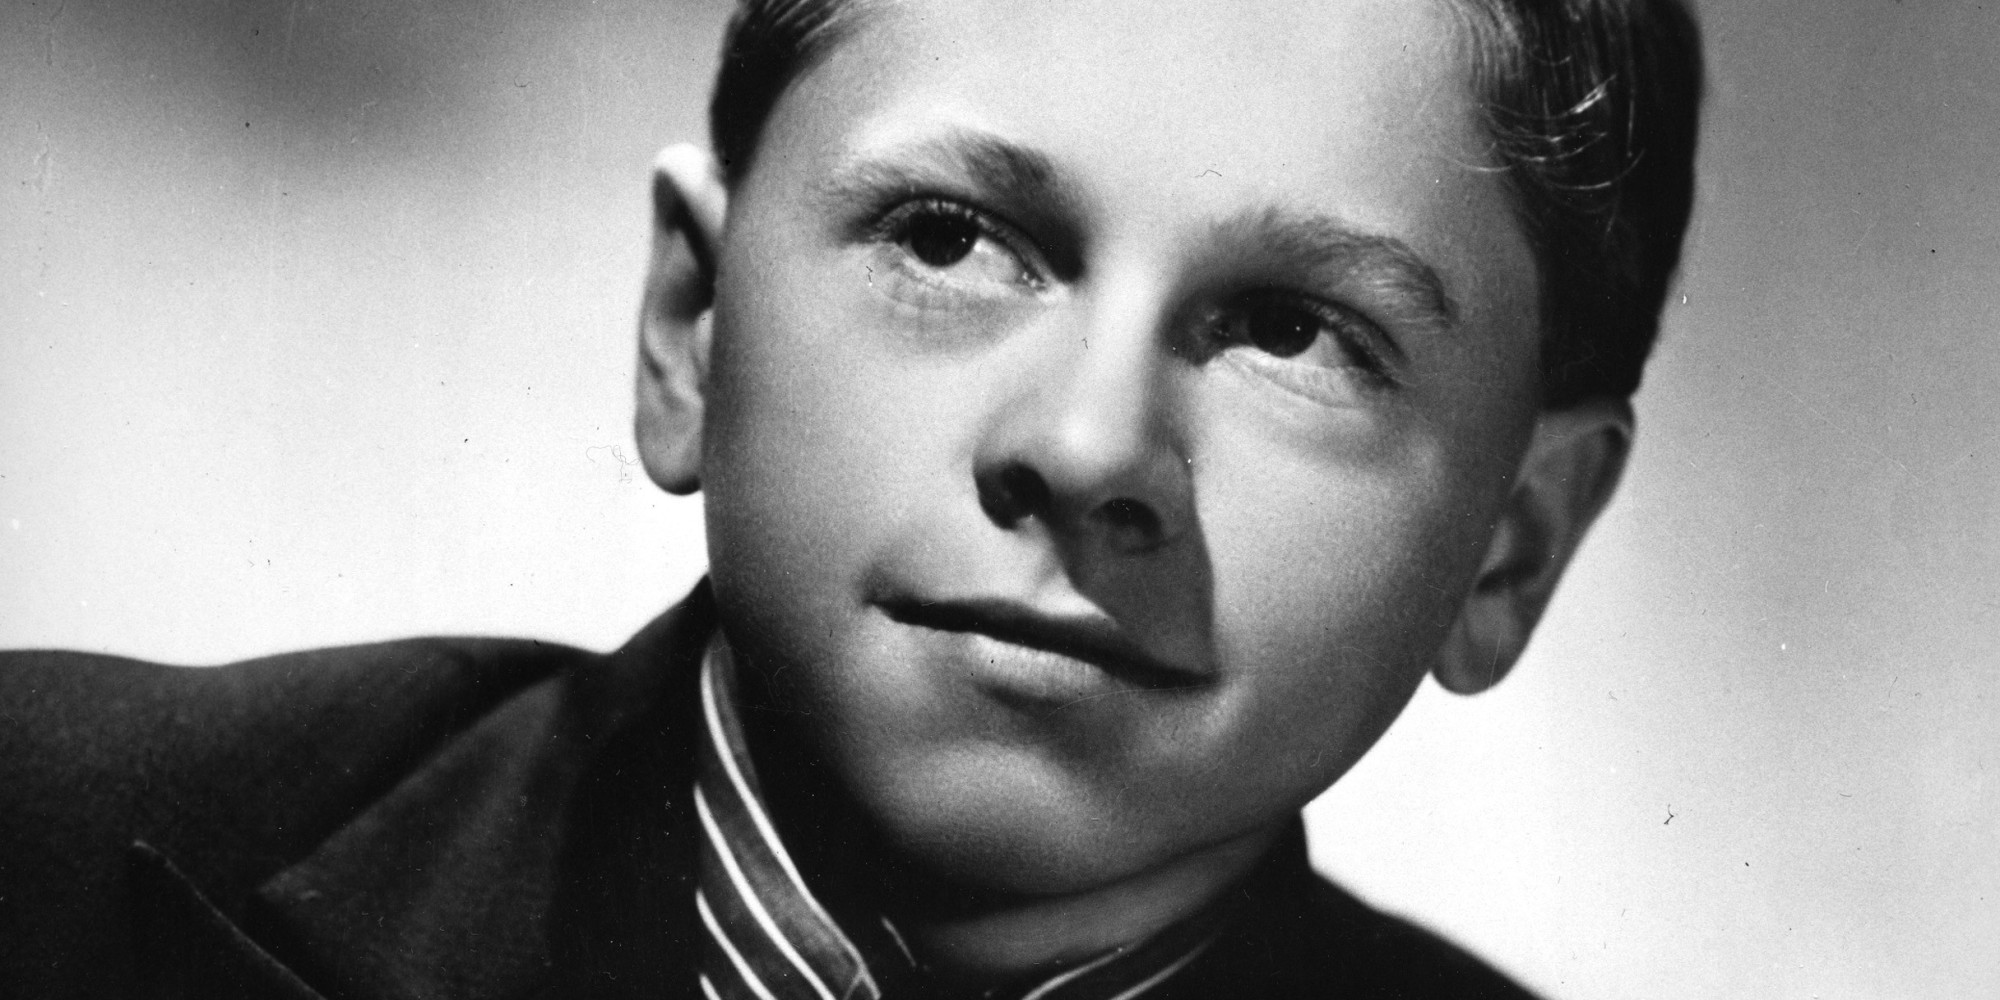 Tribute: Mickey Rooney | Funk's House of Geekery